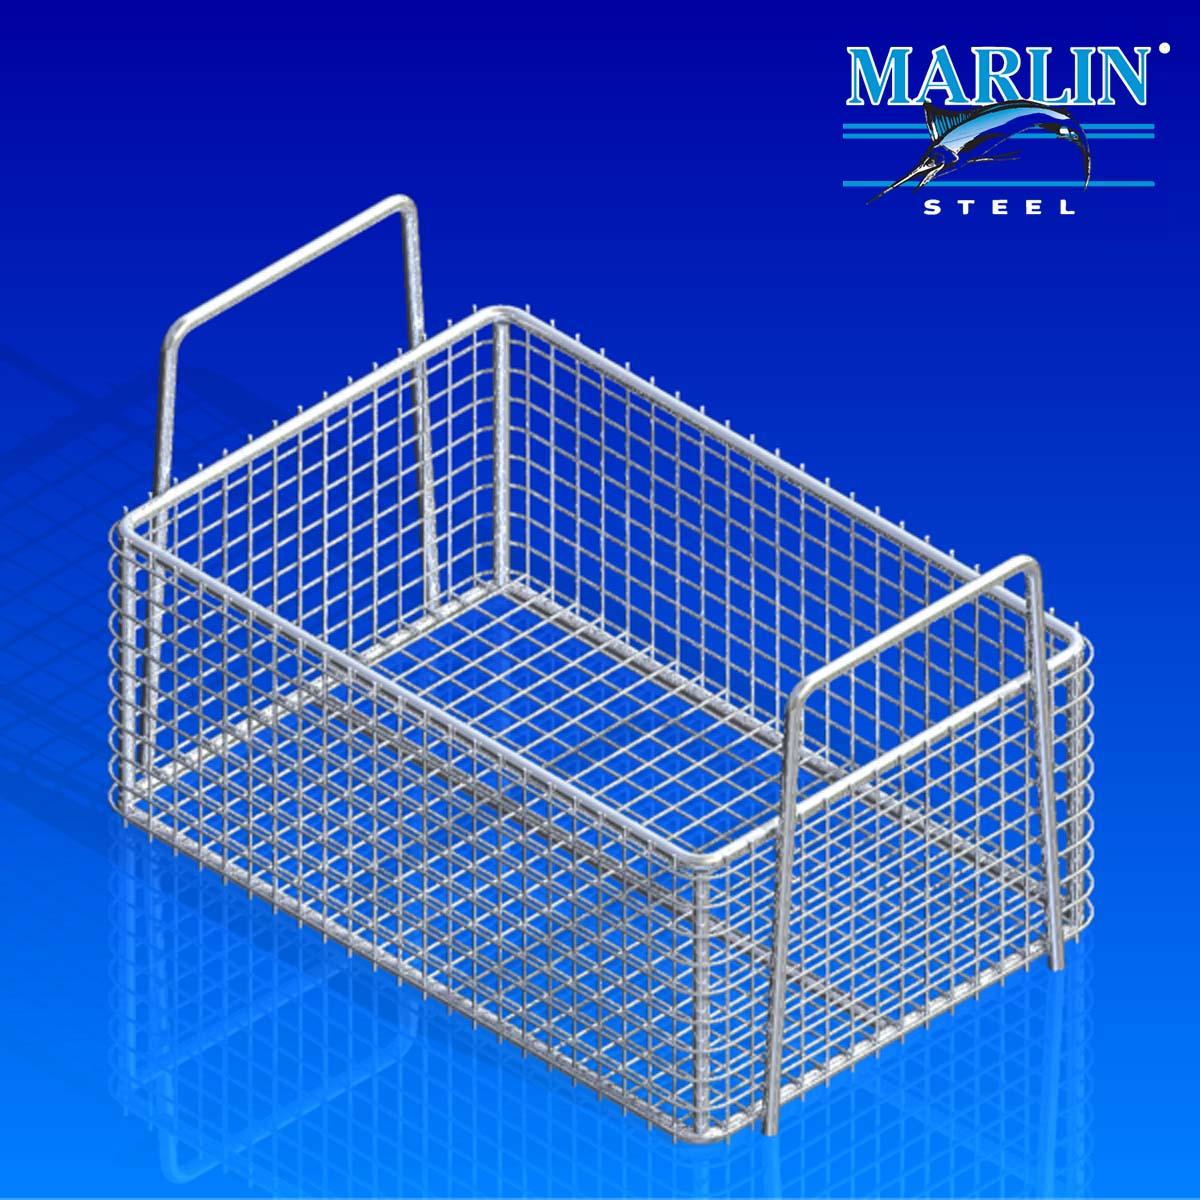 Marlin Steel Basket with Handles 725001